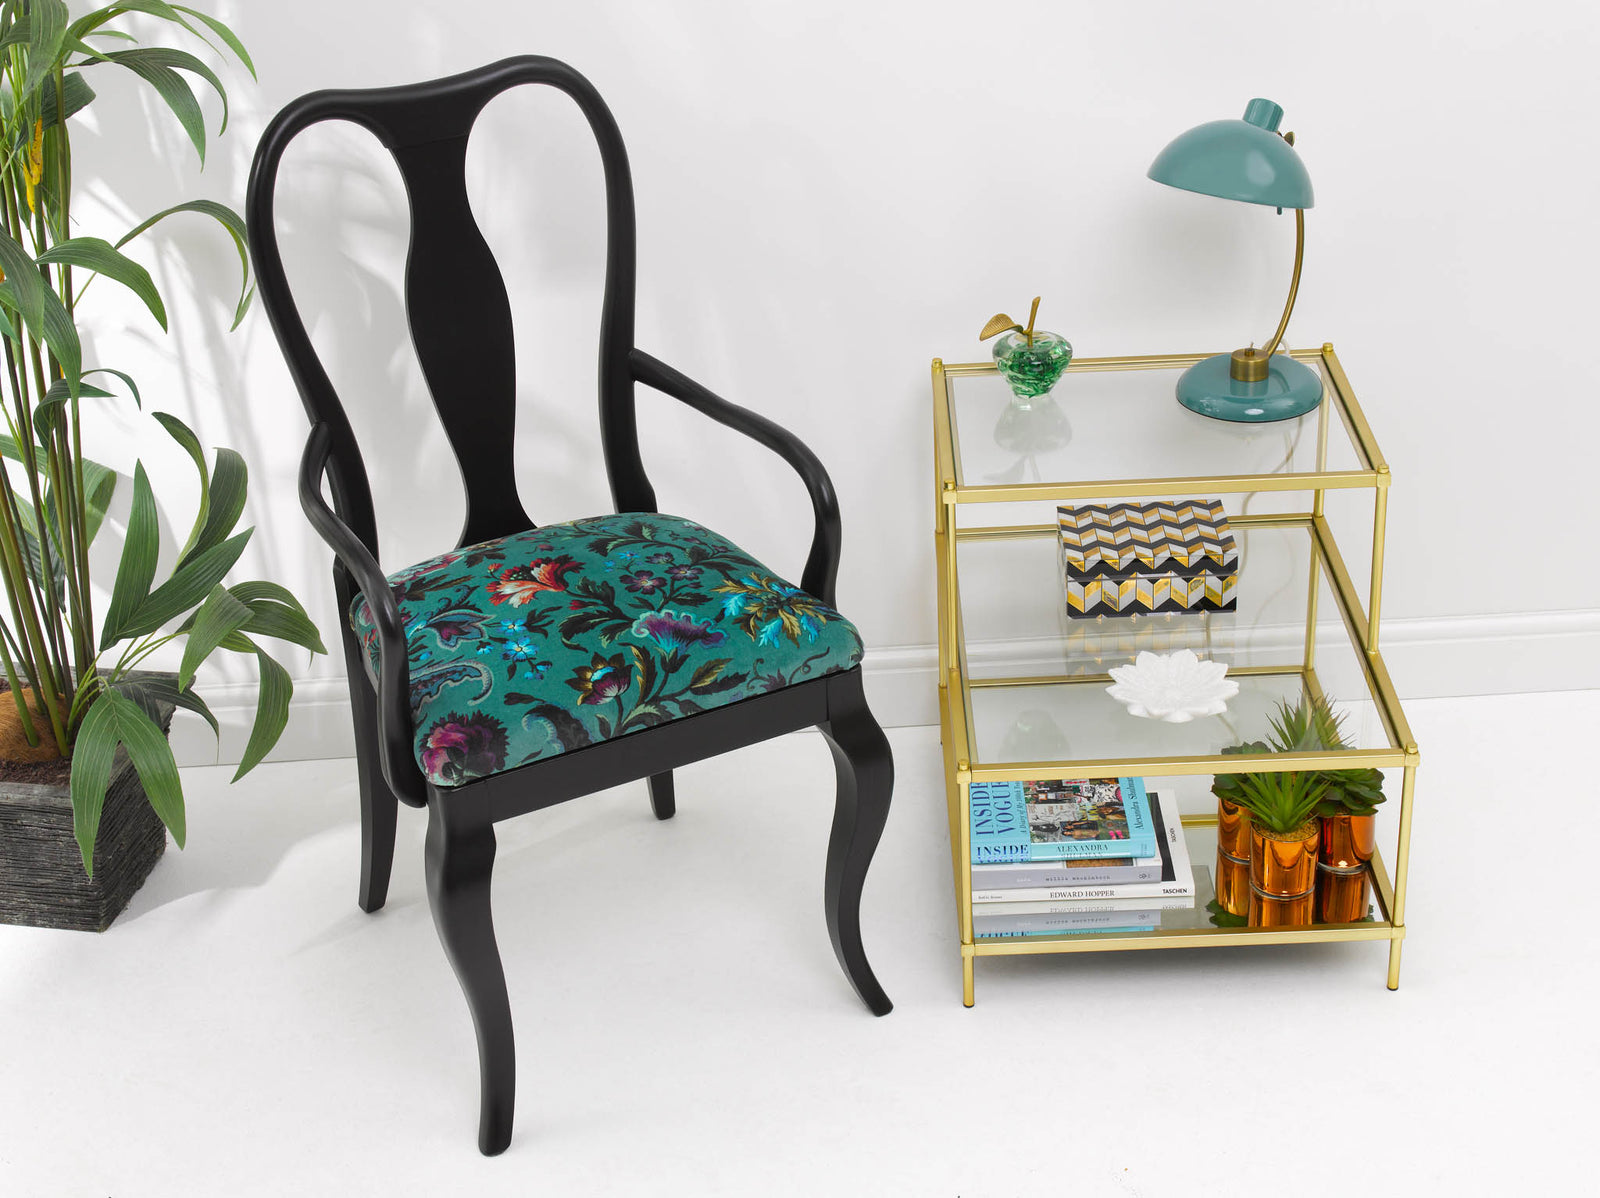 Contemporay Black Armchair upholstered in Florika plush velvet from House of Hackney